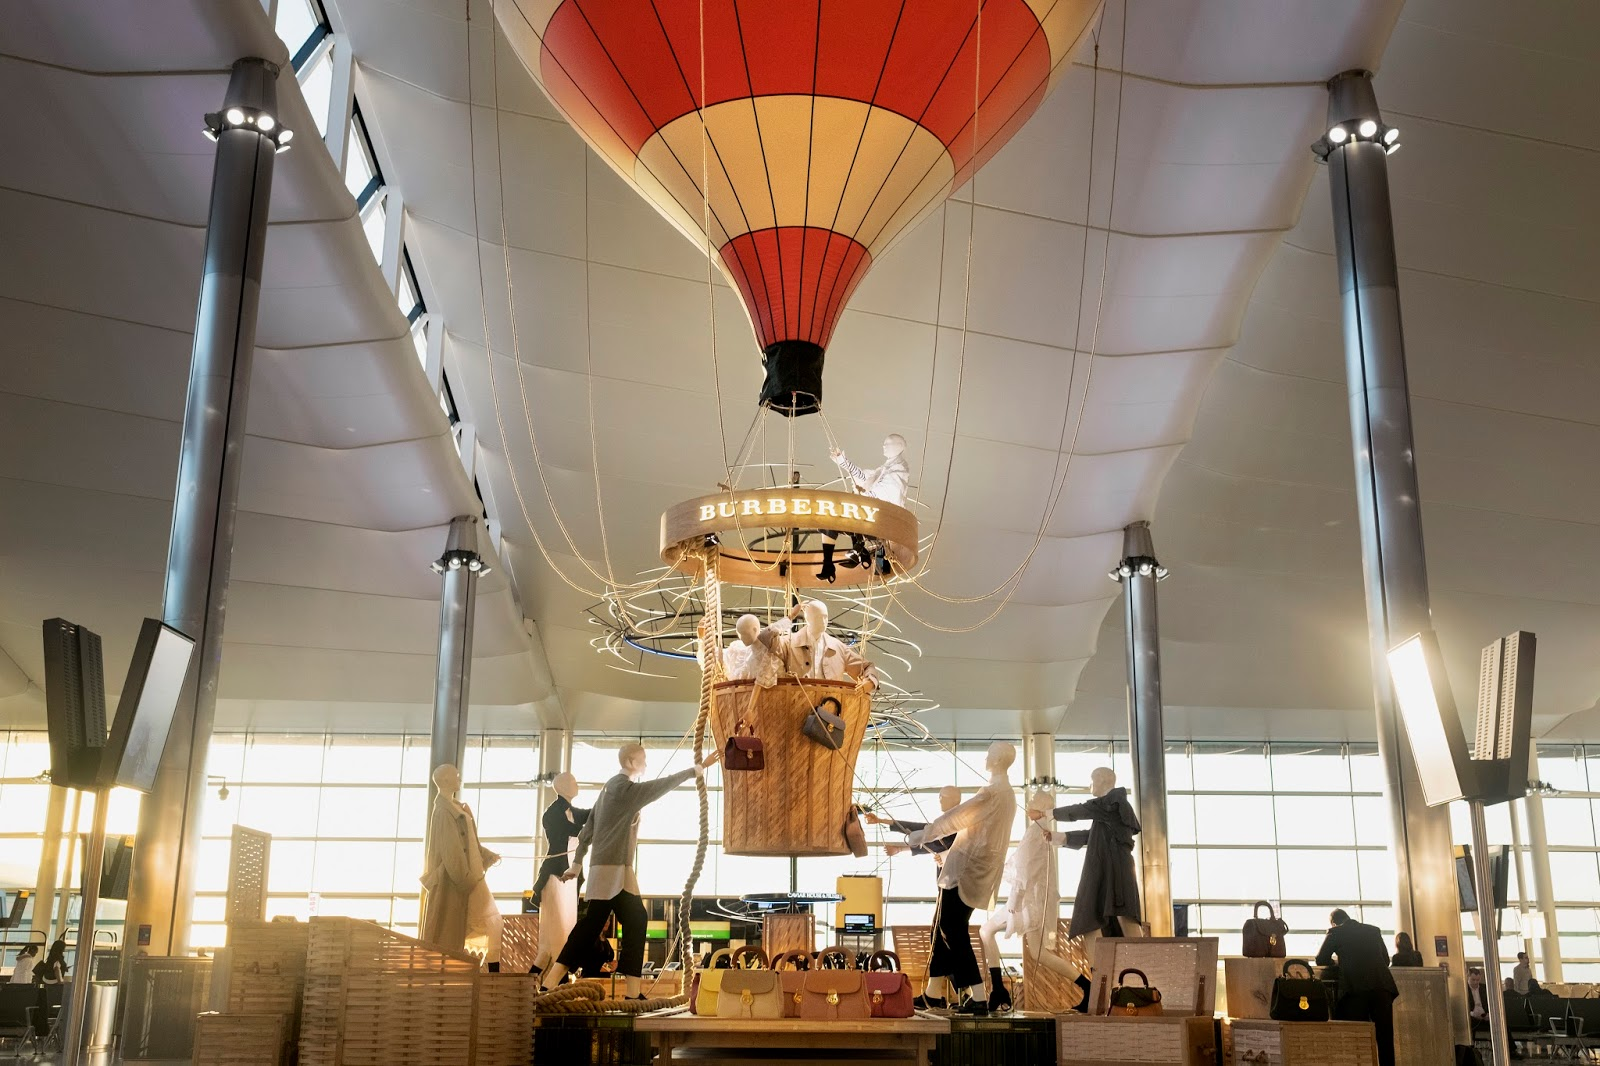 Burberry's Hot Air Balloon Installation & Pop-Up Store at Heathrow